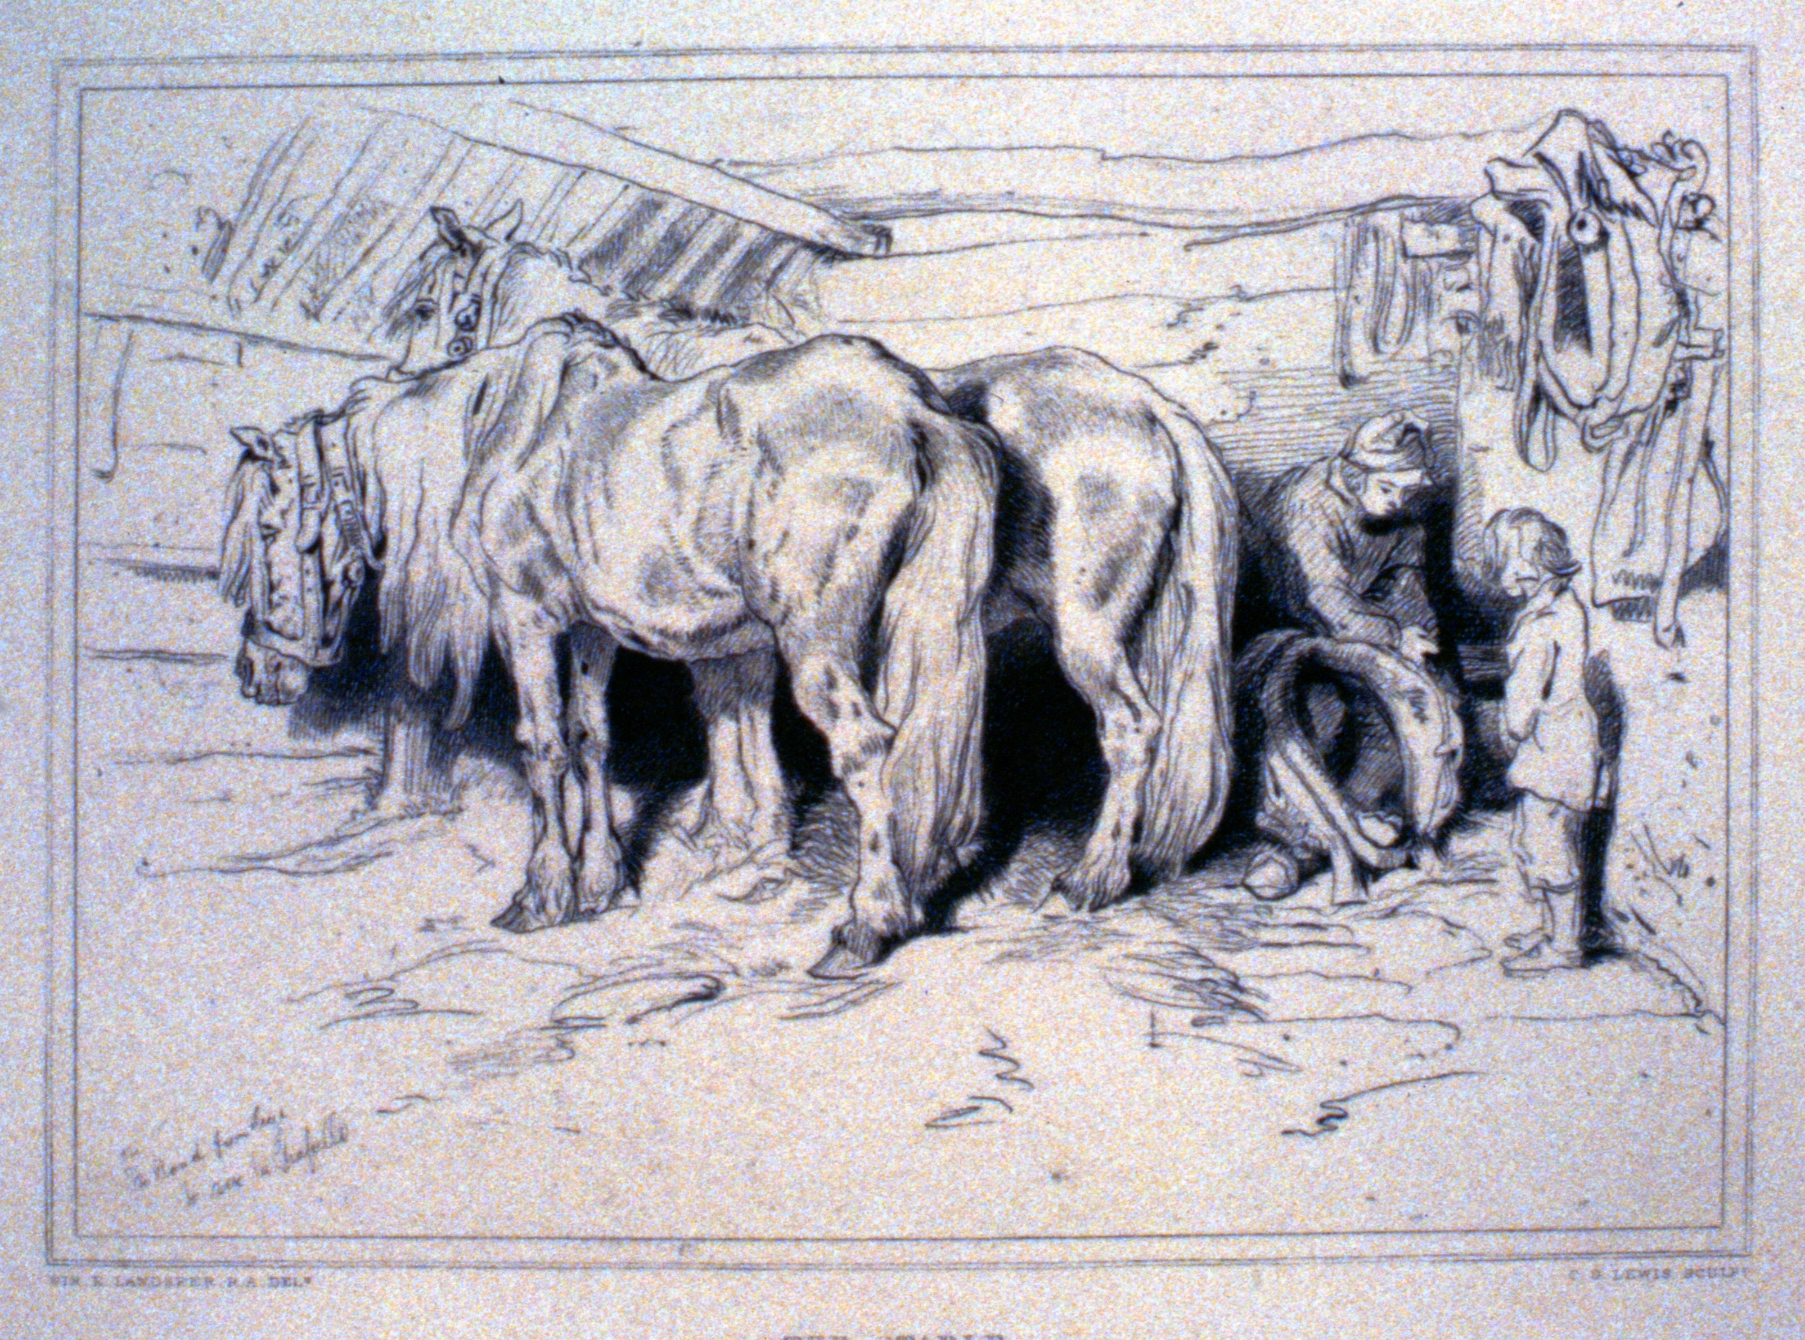 The Stable c. late 19th Century, Charles G. Lewis, steel engraving, 18.7 cm x 25.7 cm, 1996.08.04, gift of Yvonne Adams